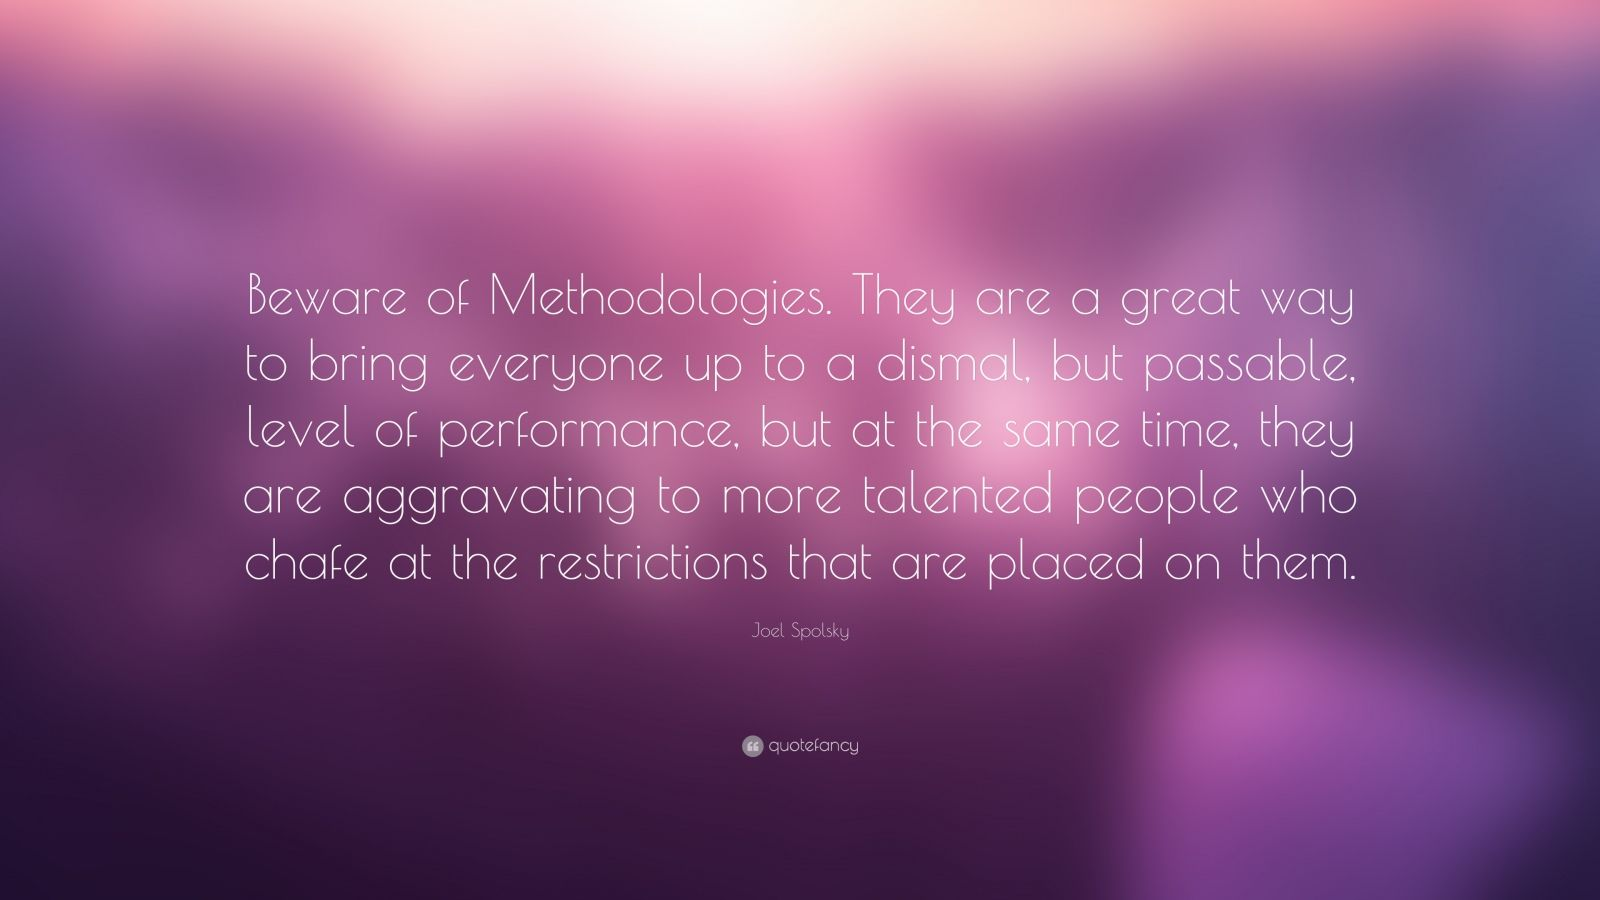 "Joel Spolsky Quote: ""Beware of Methodologies. They are a great way to bring everyone up to a dismal, but passable, level of performance, but at the same time, they are aggravating to more talented people who chafe at the restrictions that are placed on them."""